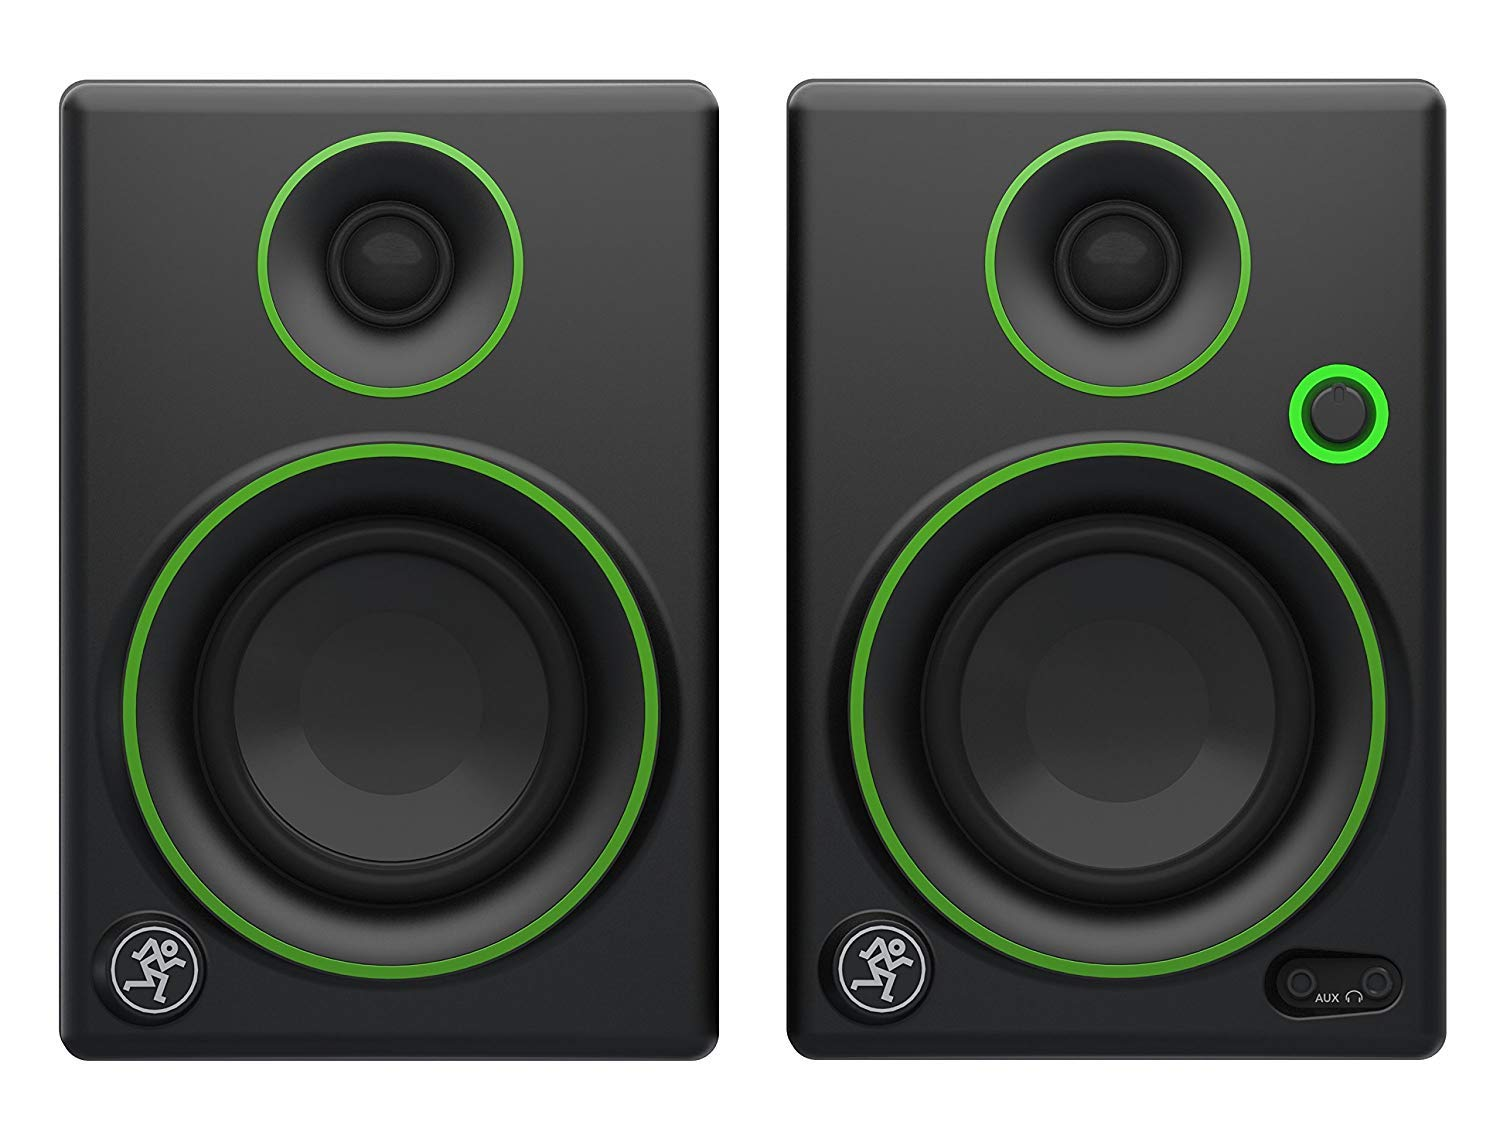 Mackie CR3 3'' Creative Reference Multimedia Monitors Bundle with Mackie Onyx Artist 1-2 USB Audio Interface and Tascam TH-02 Closed Back Studio Headphones by Circuit City (Image #3)